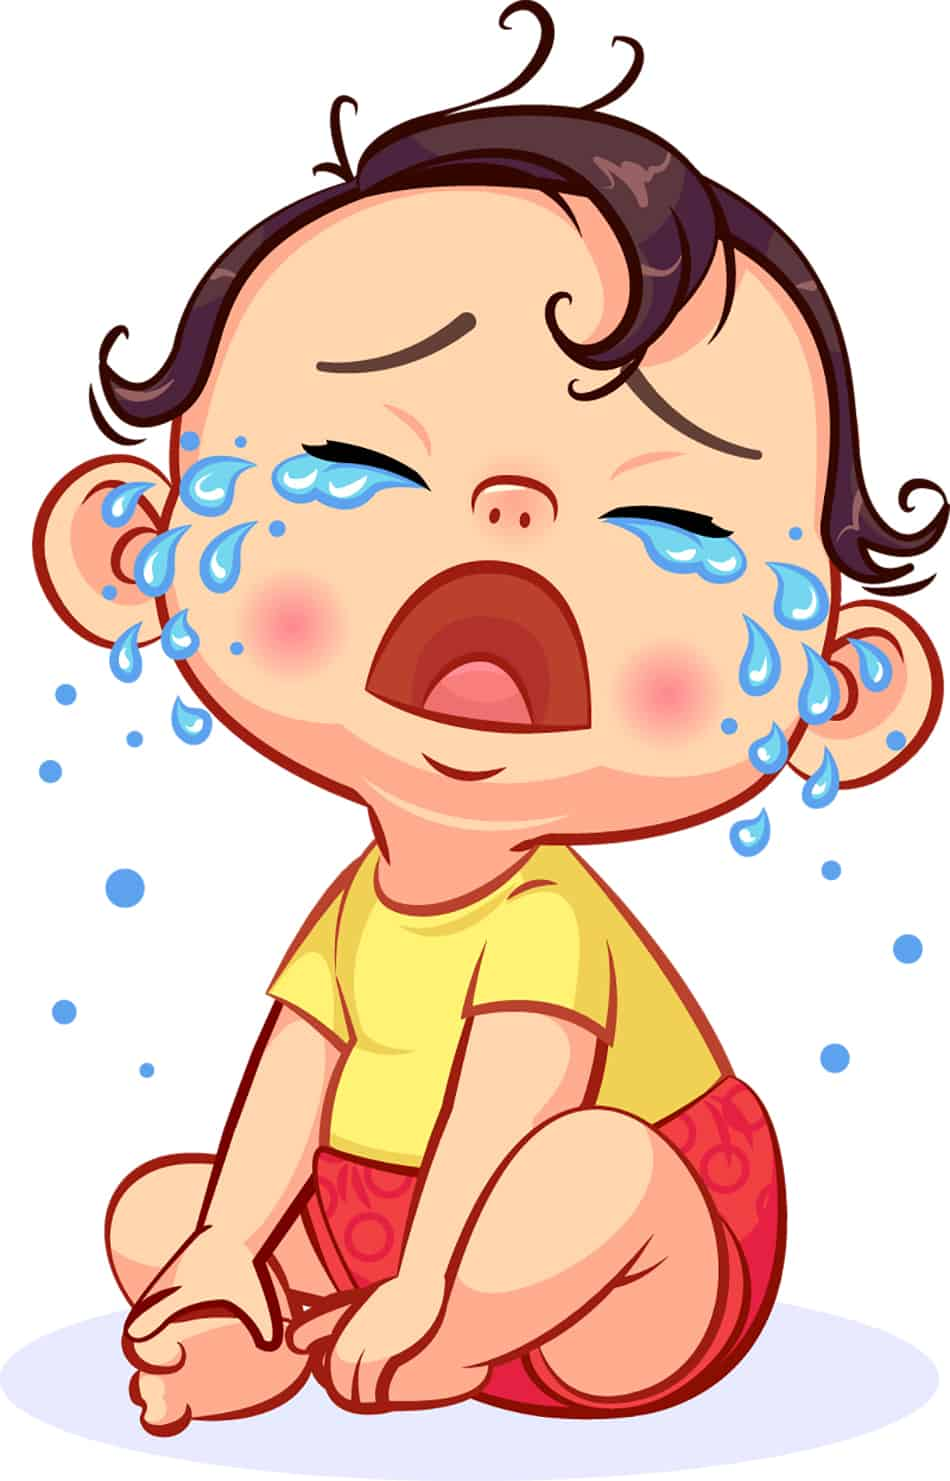 Dream of a crying baby boy